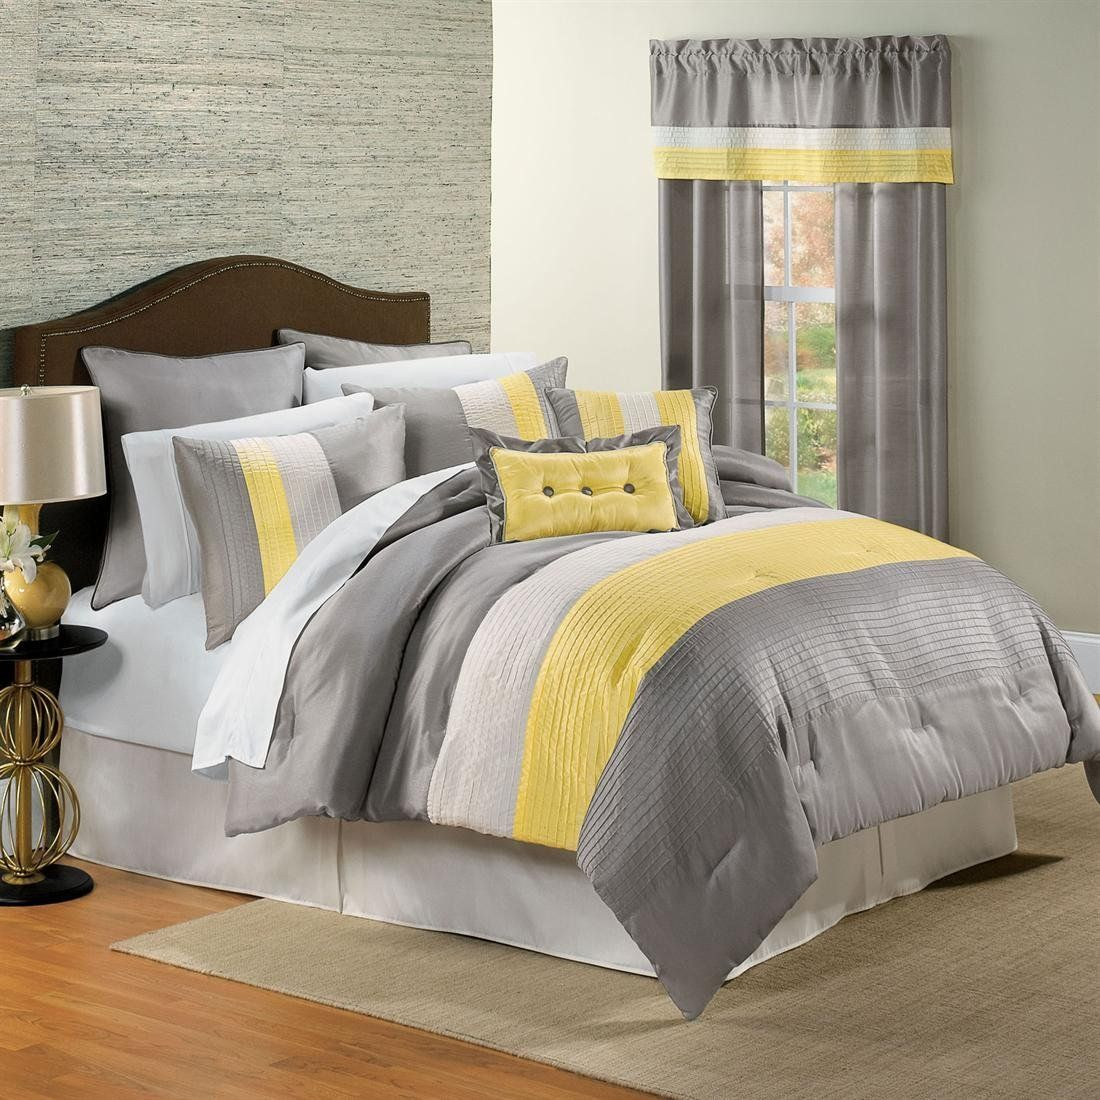 Delightful Yellow Gray Bedding Set Gallery